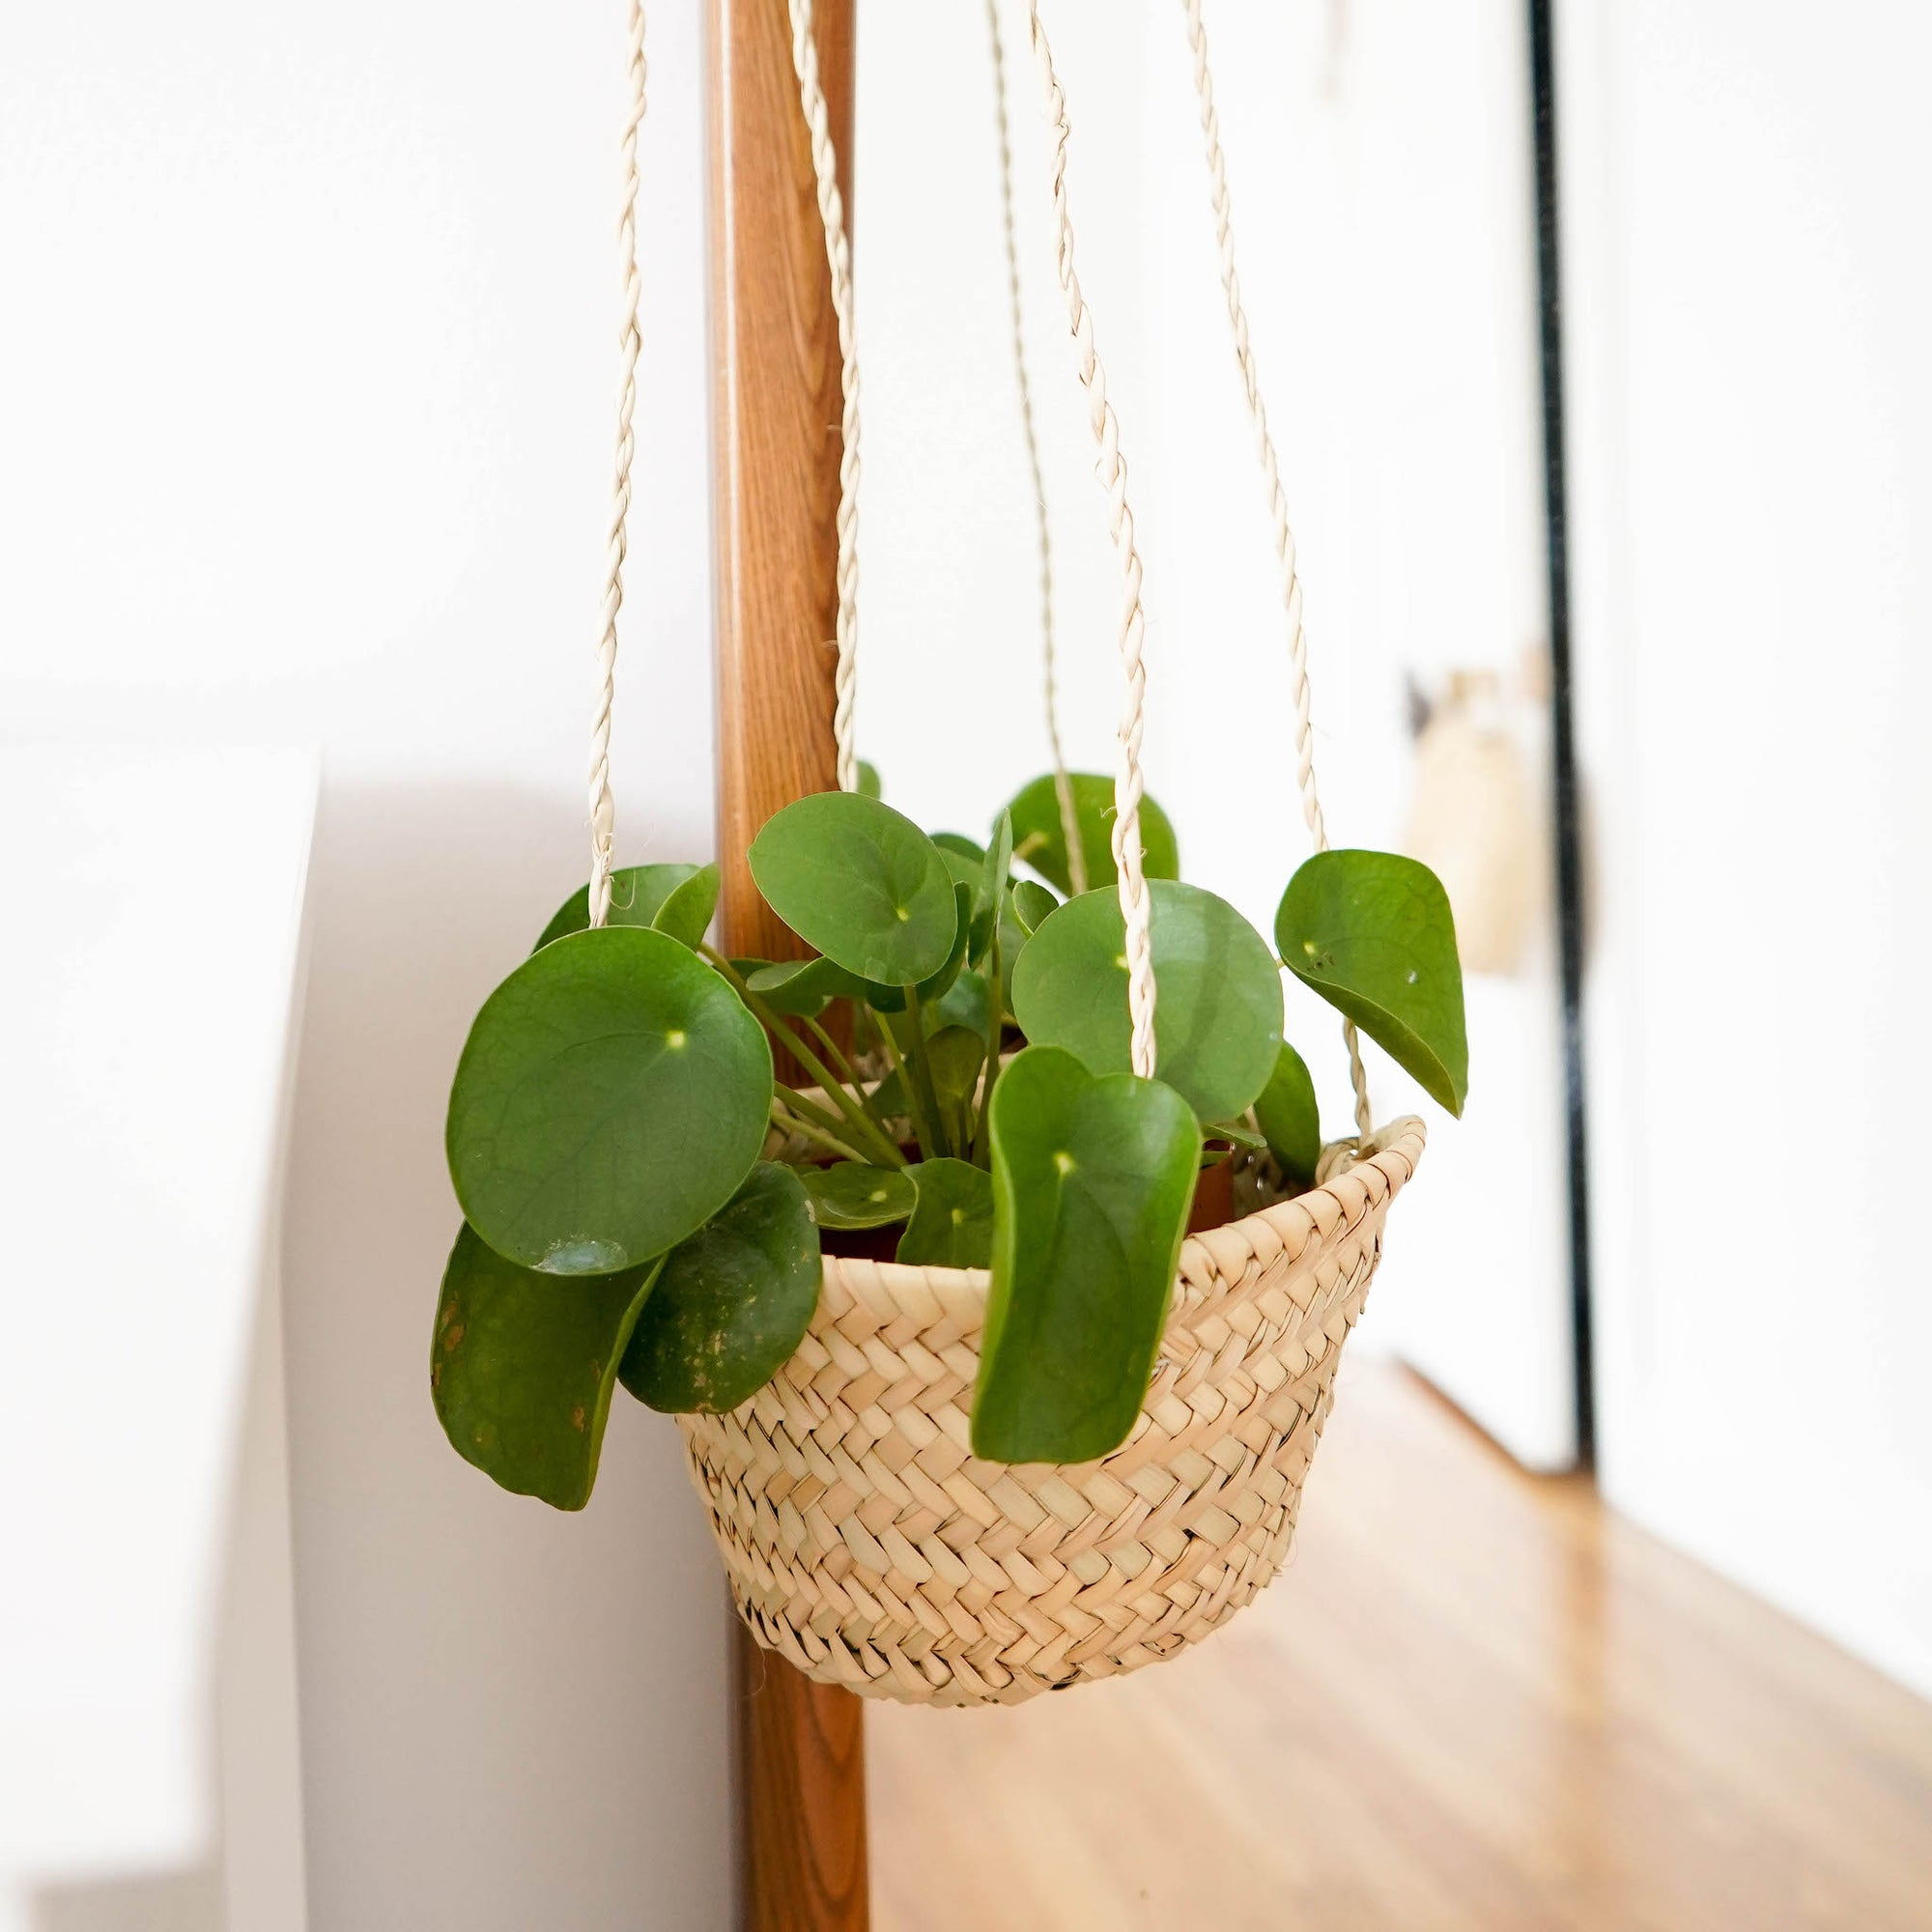 Handwoven plant hanger with a green money plant